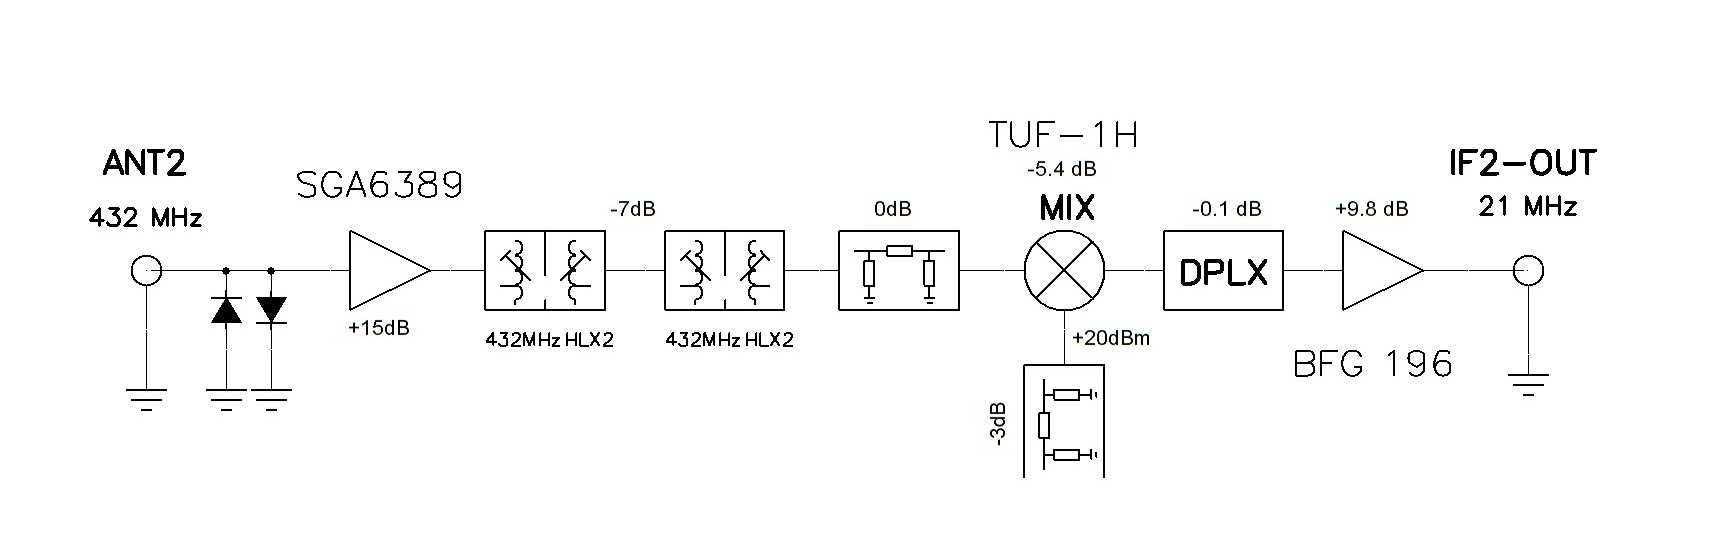 Xvrt Gain Amplifier Circuit Composed Of The Ad7523 Amplifiercircuit Fig2 Base Second Rx Converter Block Diagram